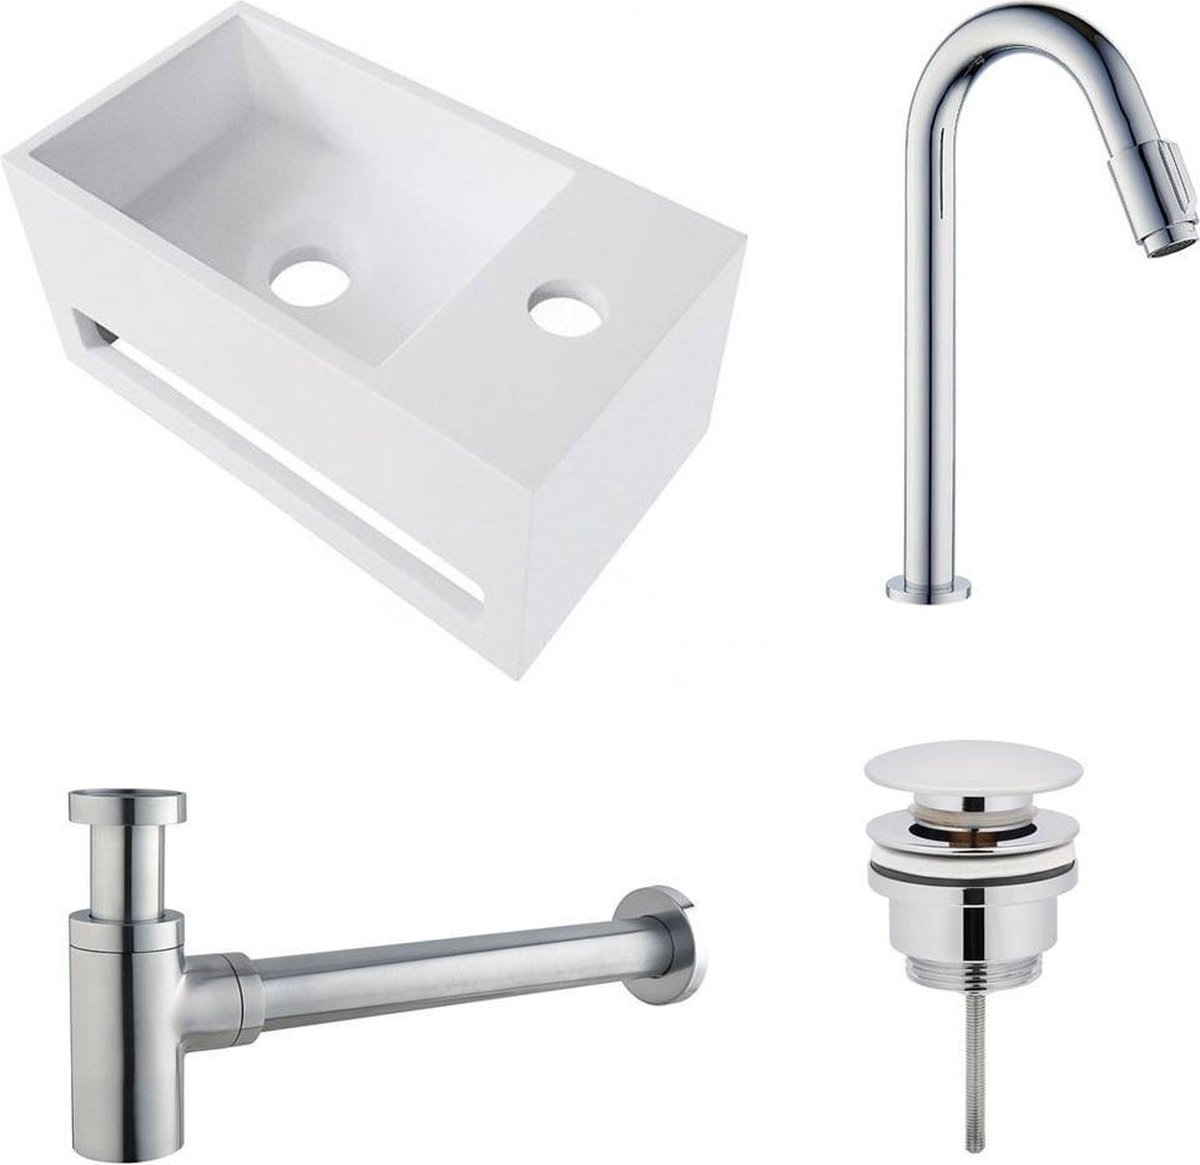 Fonteinset Yano Solid Surface Rechts 36x20x16cm Toiletkraan Knop Clickwaste Sifon Chroom